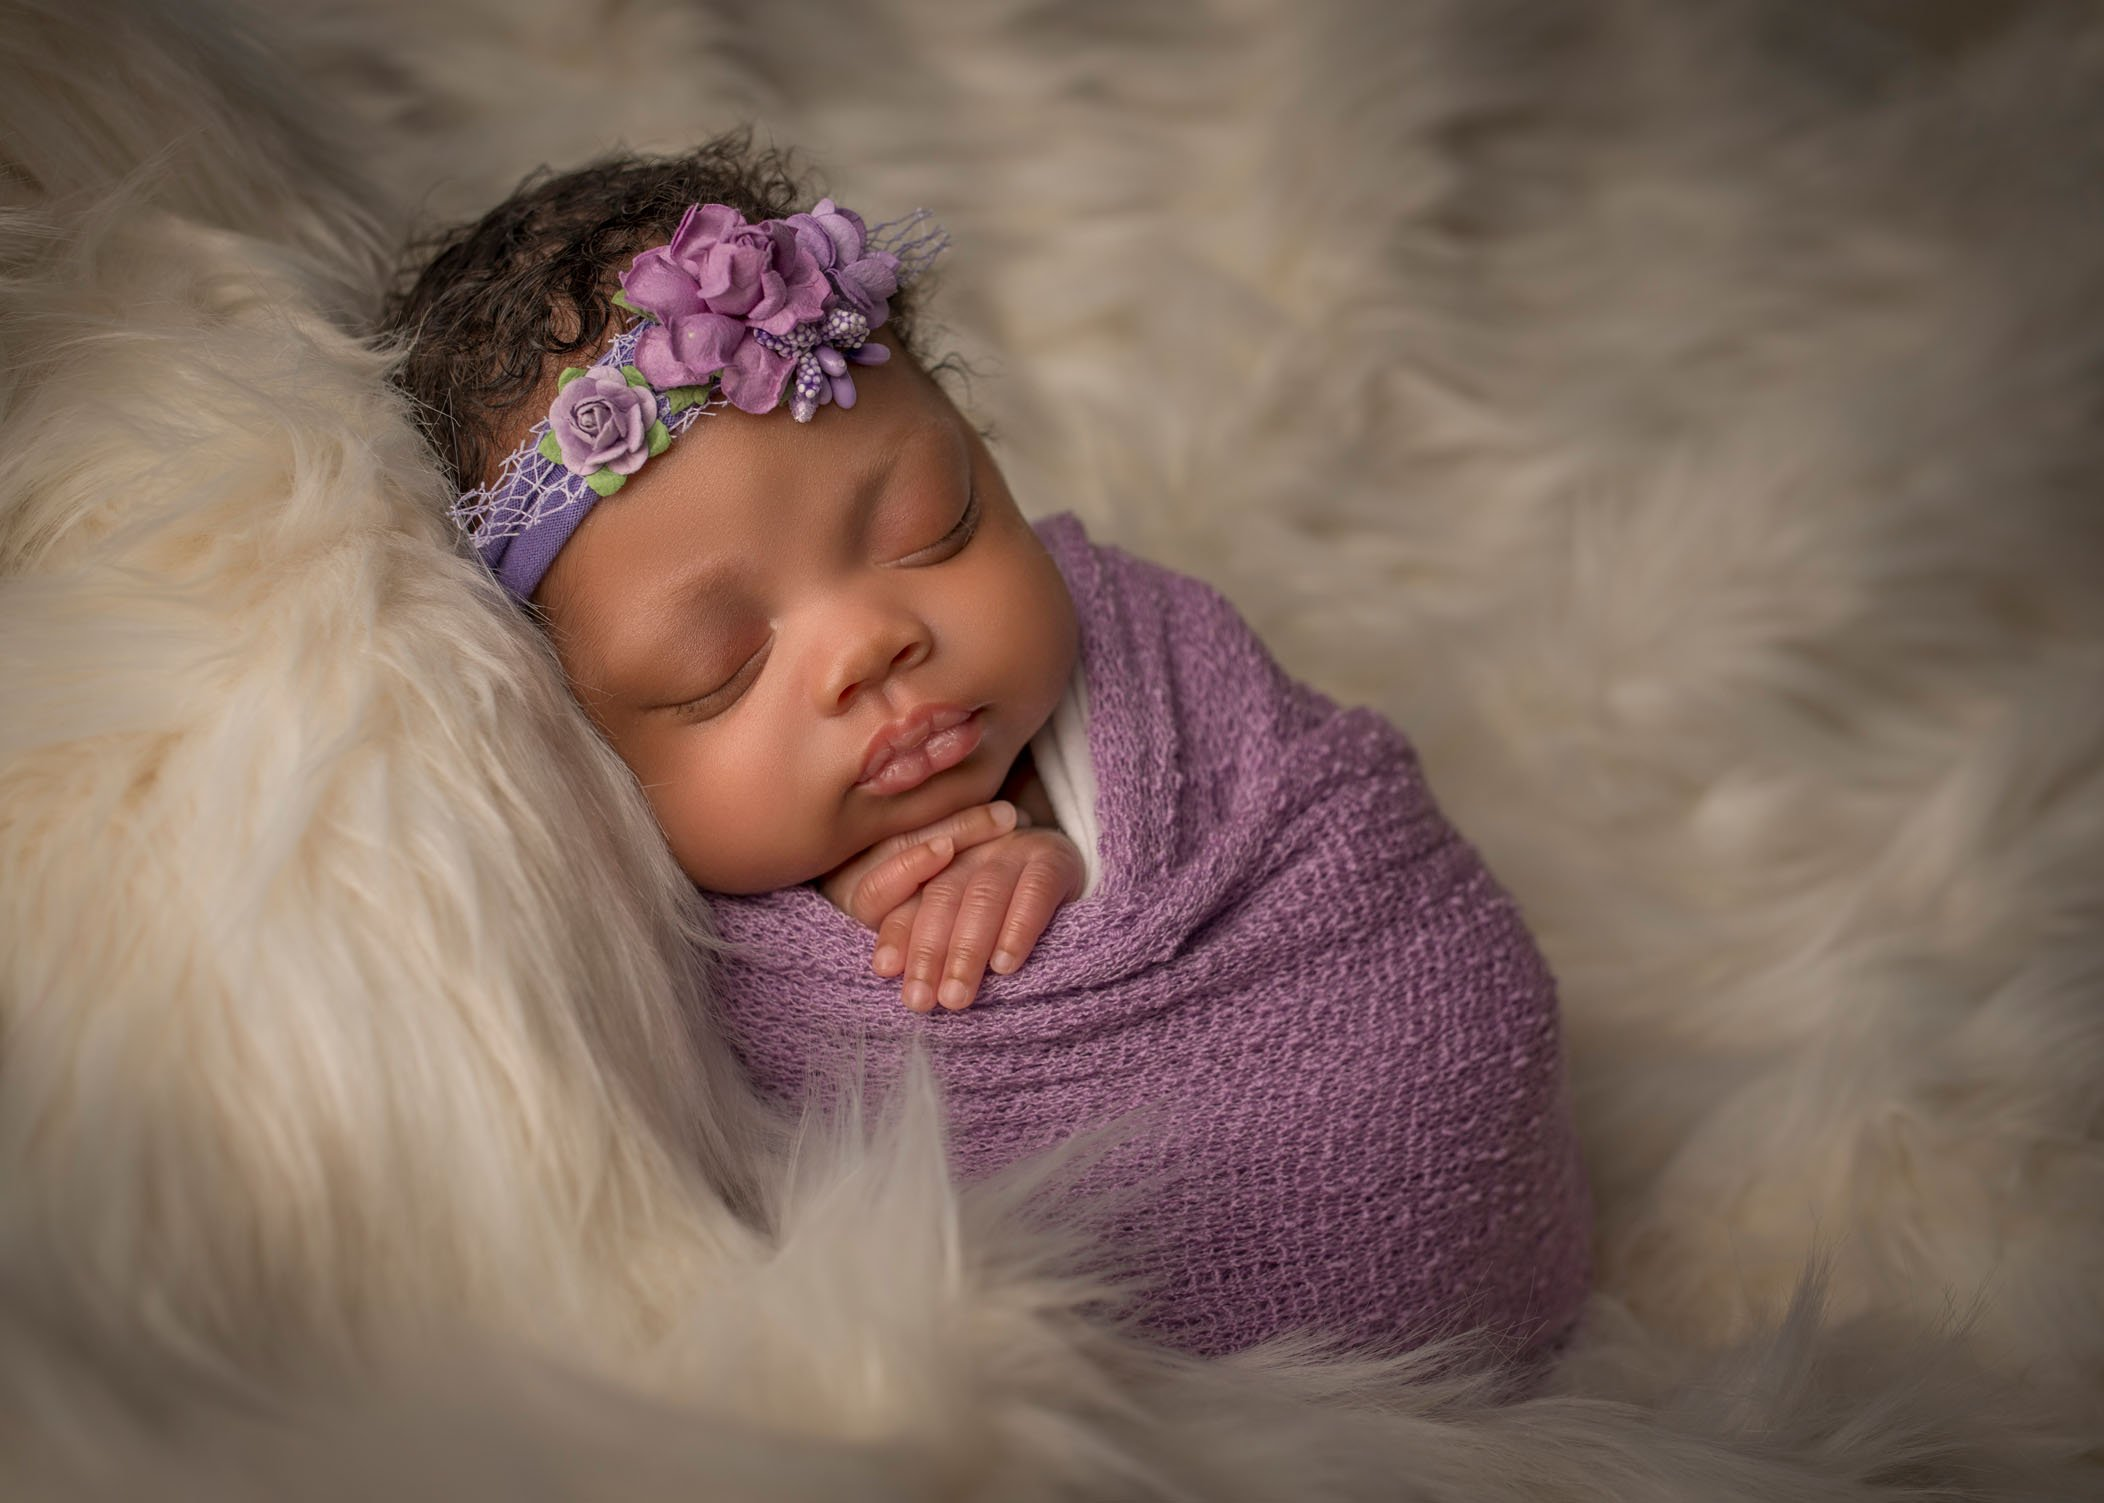 African american newborn baby girl wrapped in lavender blanket with floral headband